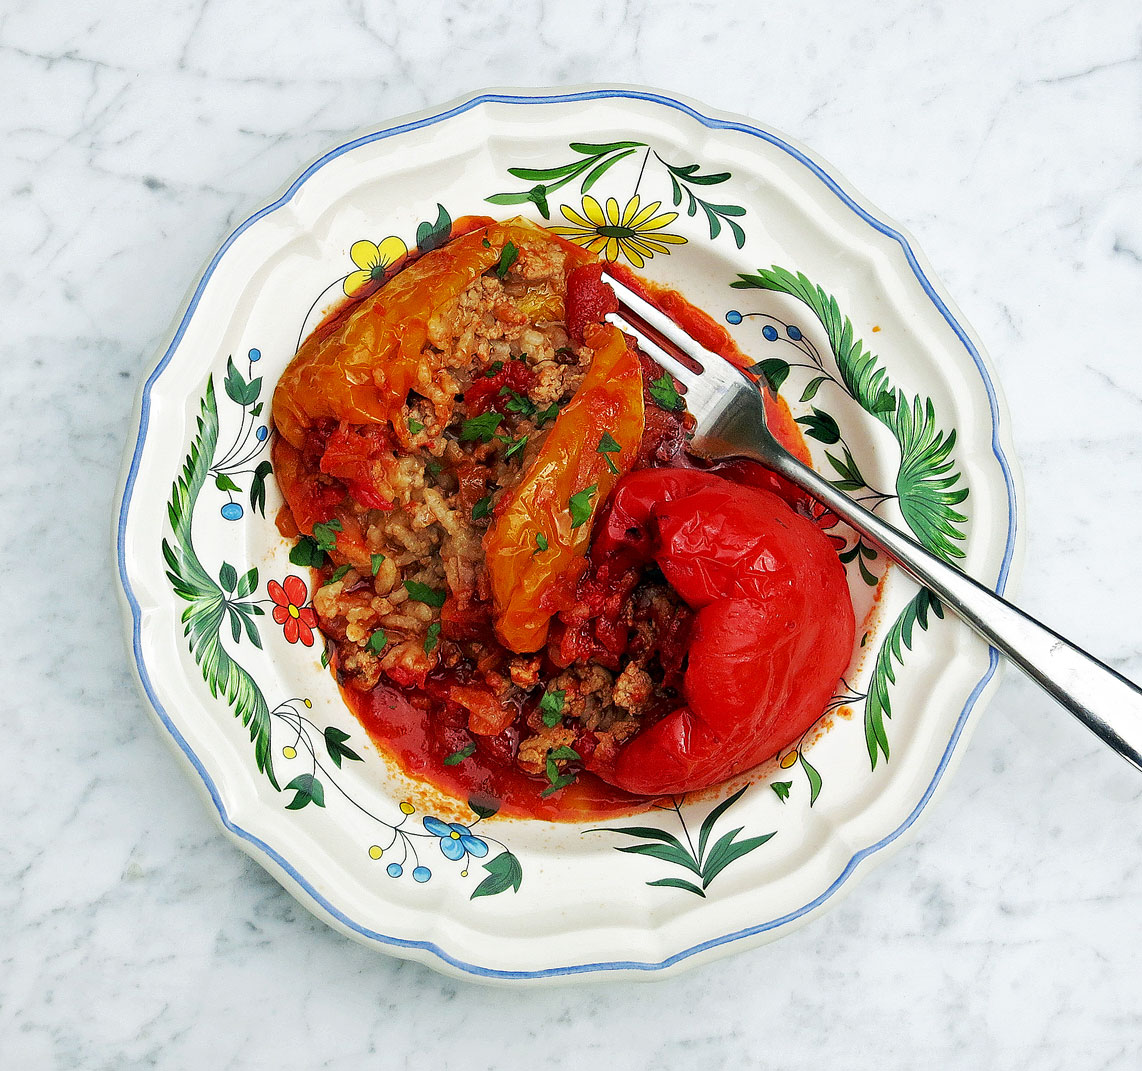 Peppers stuffed with veal, pork and